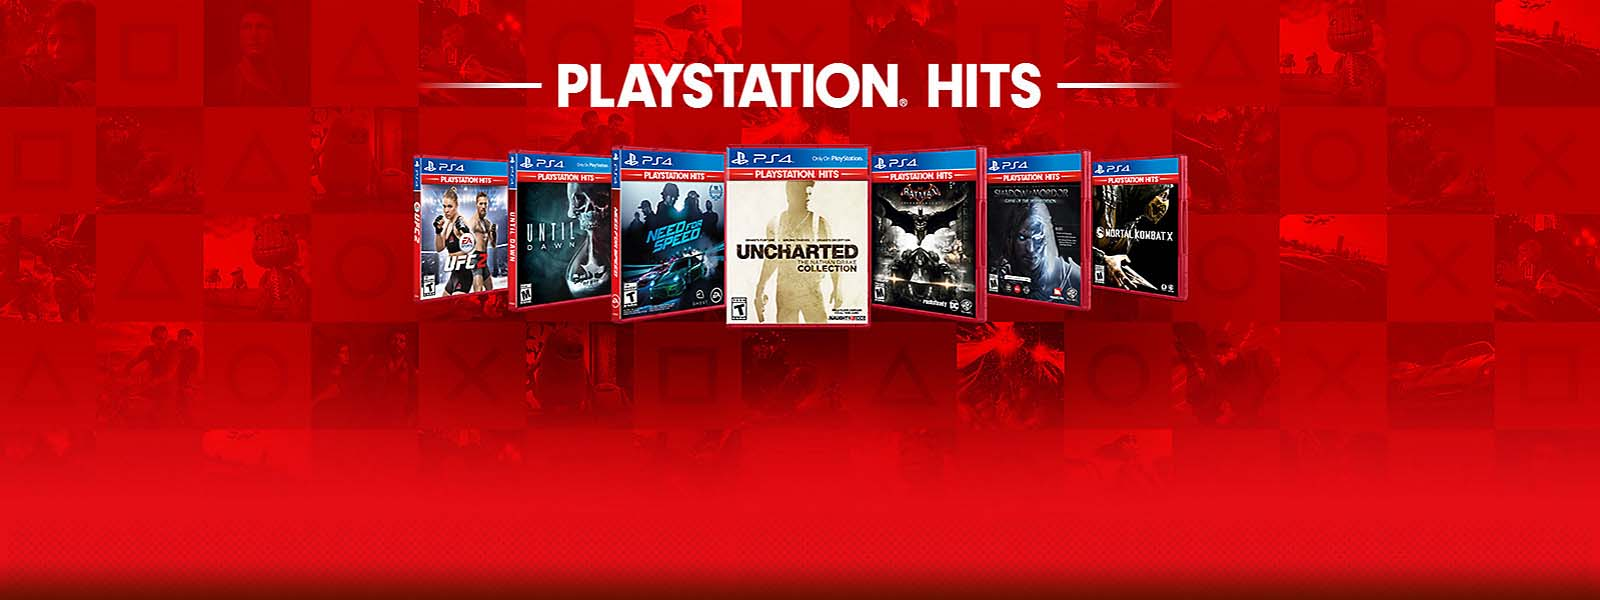 New Additions to the PlayStation Hits Lineup